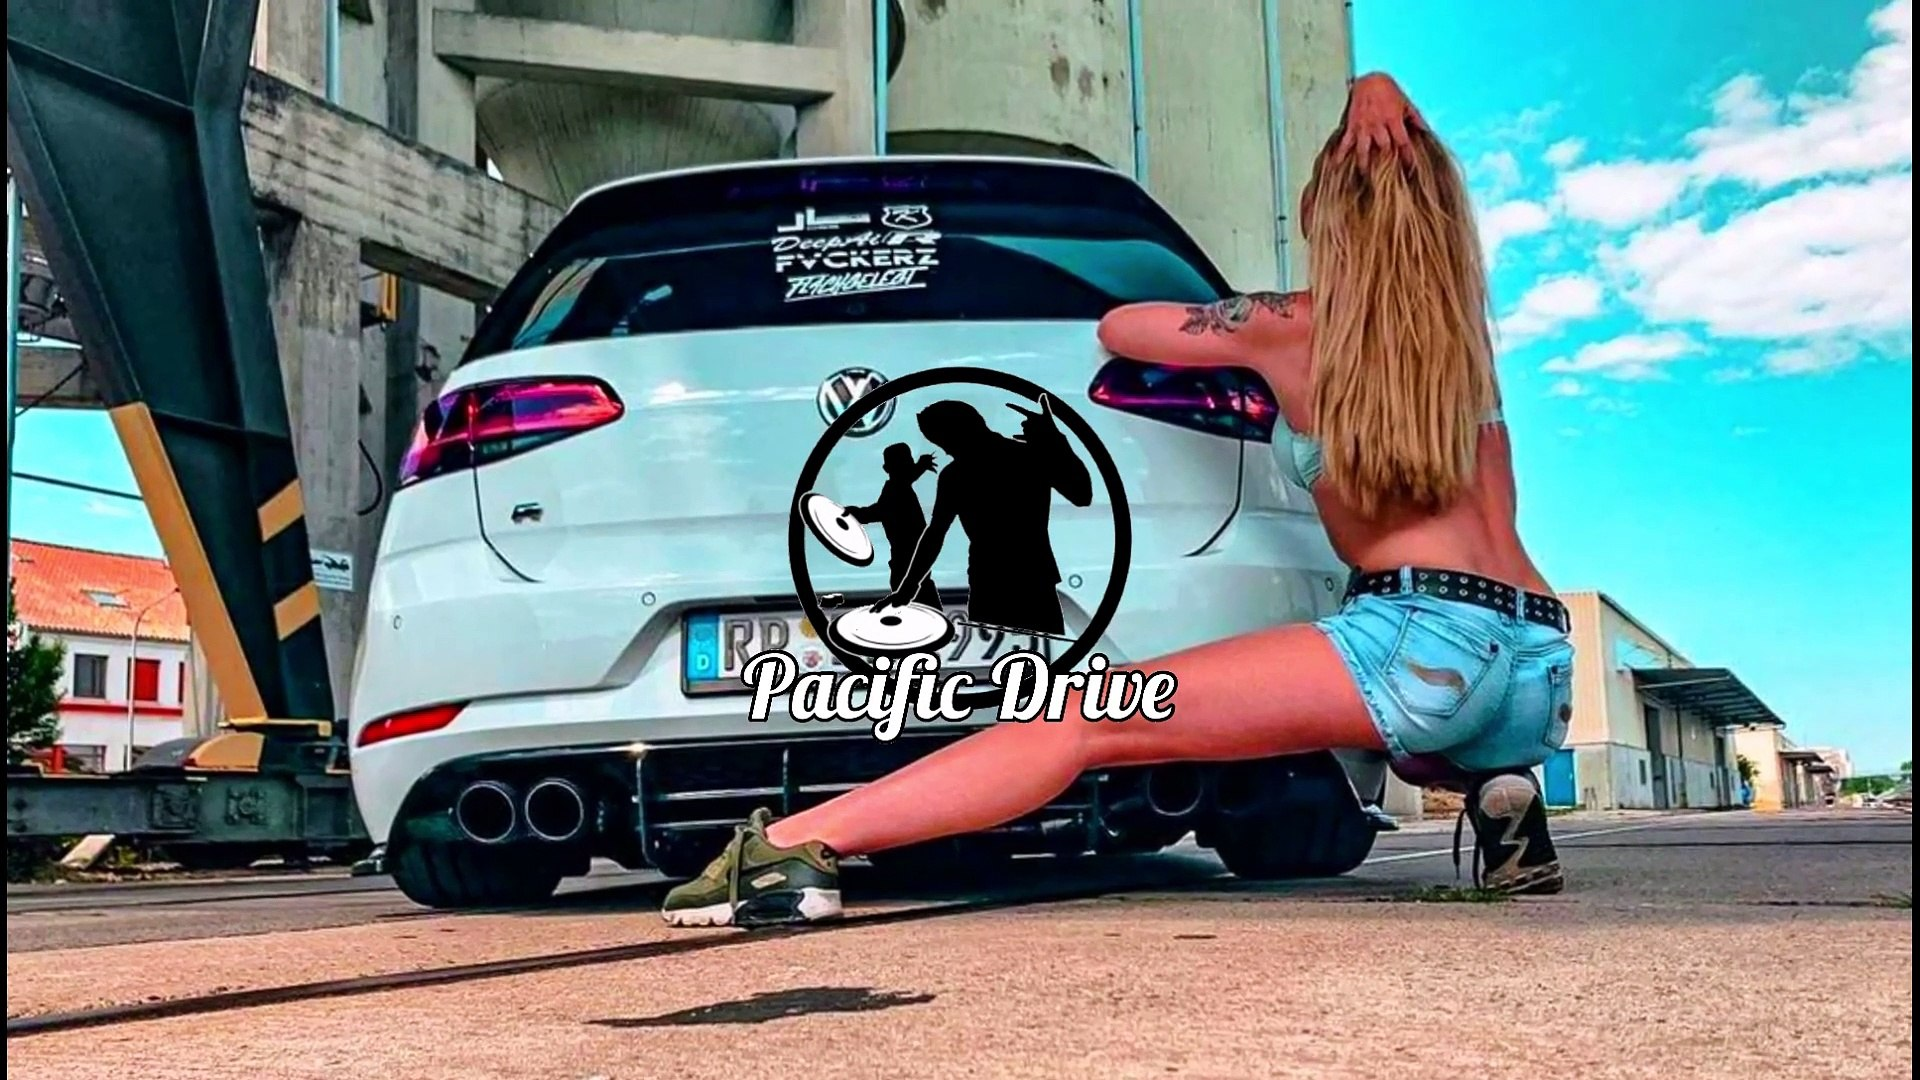 BASS BOOSTED CAR MUSIC MIX 2021  BEST EDM, BOUNCE, ELECTRO HOUSE (Mixed By Pacific Drive)